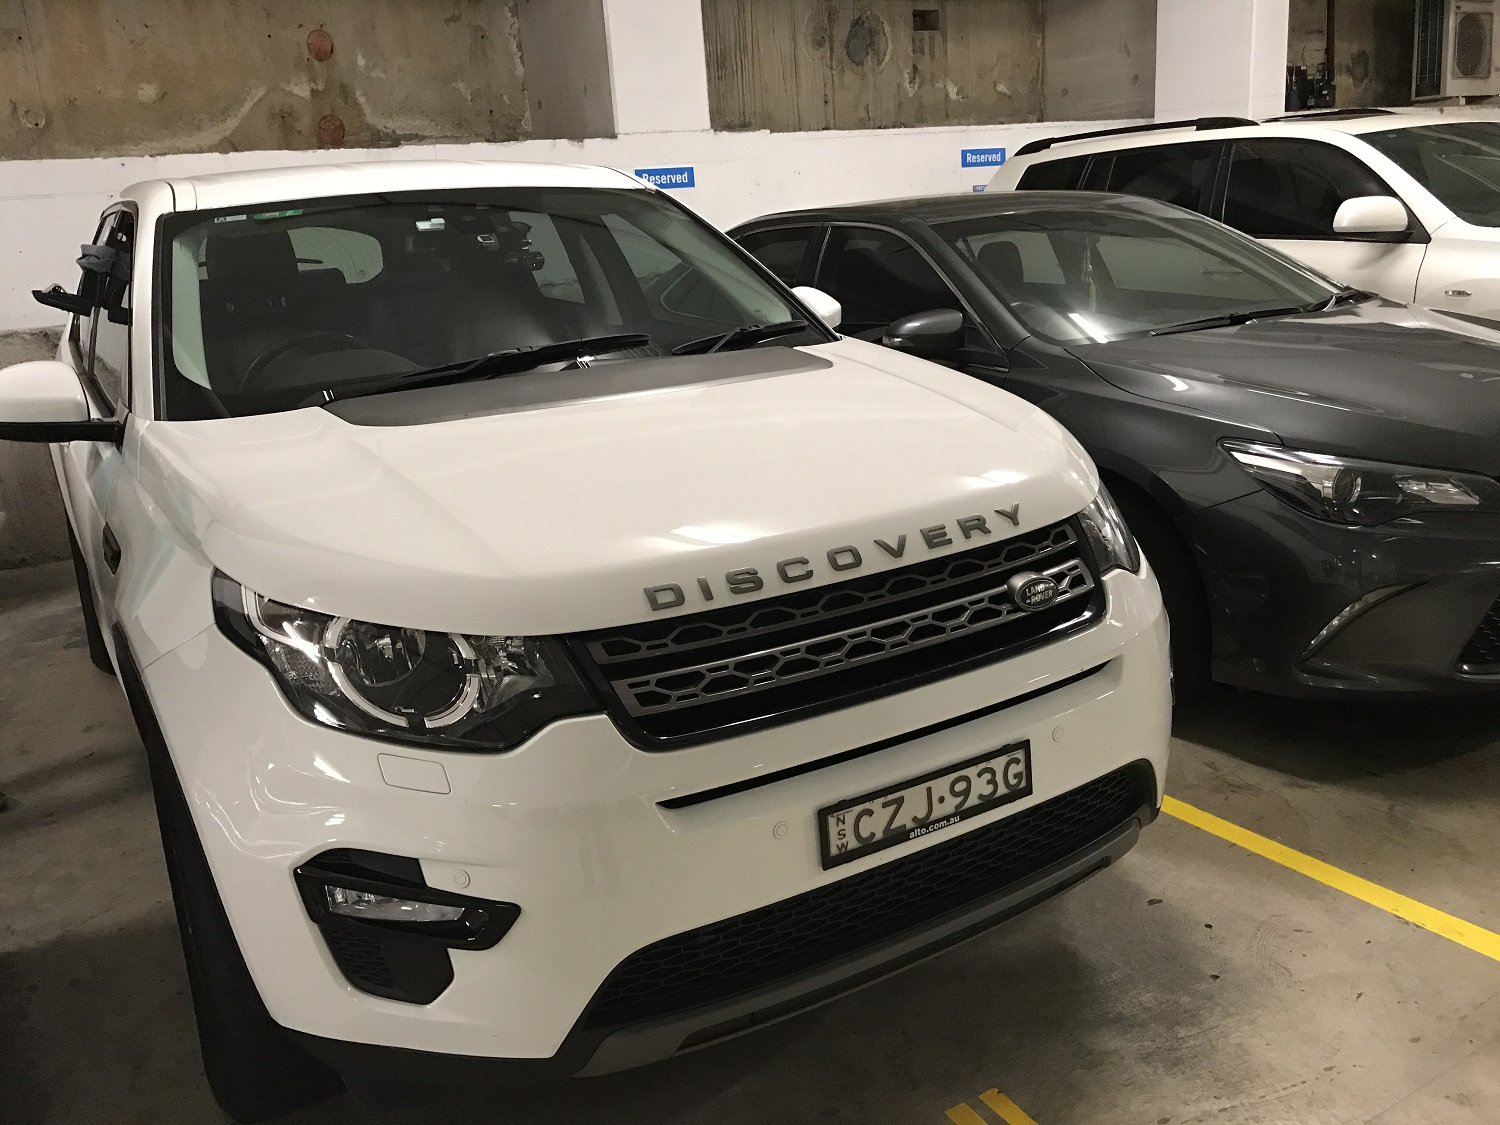 Picture of Yingying's 2015 Land Rover Discovery Sport